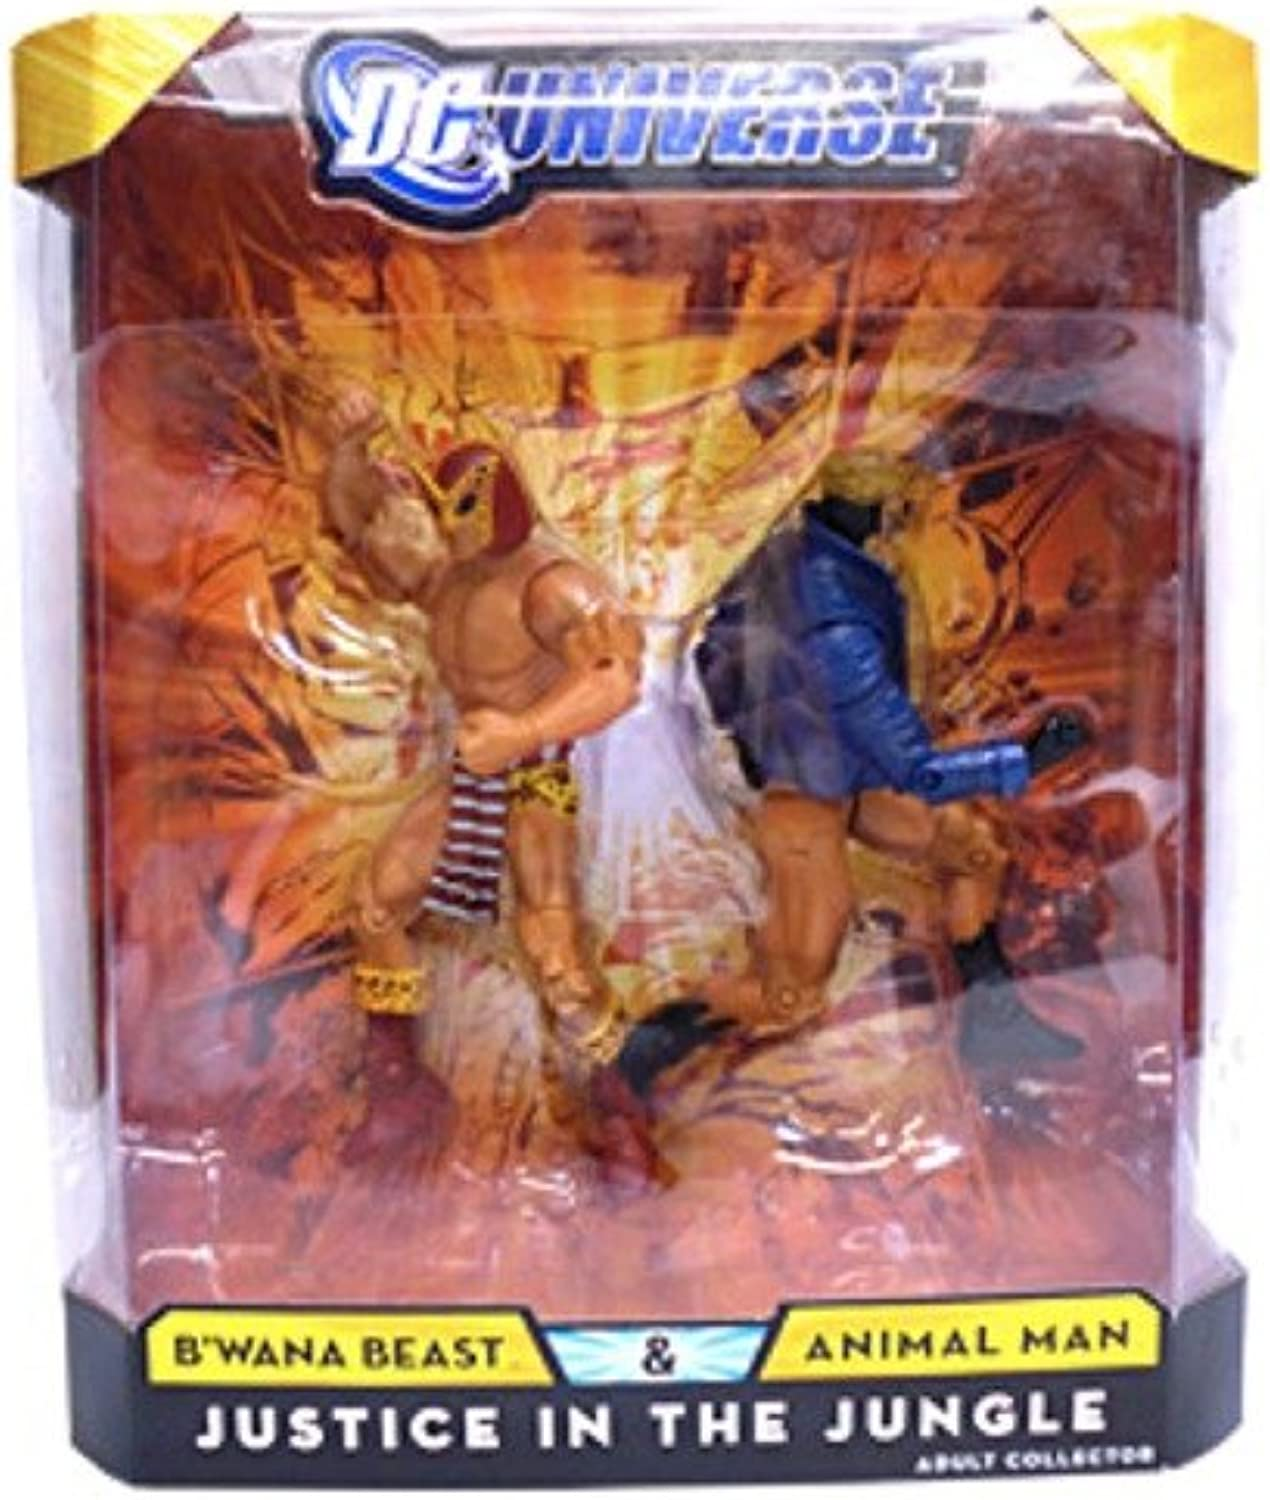 Dc Comics Dc Universe Classics Justice In The Jungle Action Figure 2pack Bwana Beast & Animal Man